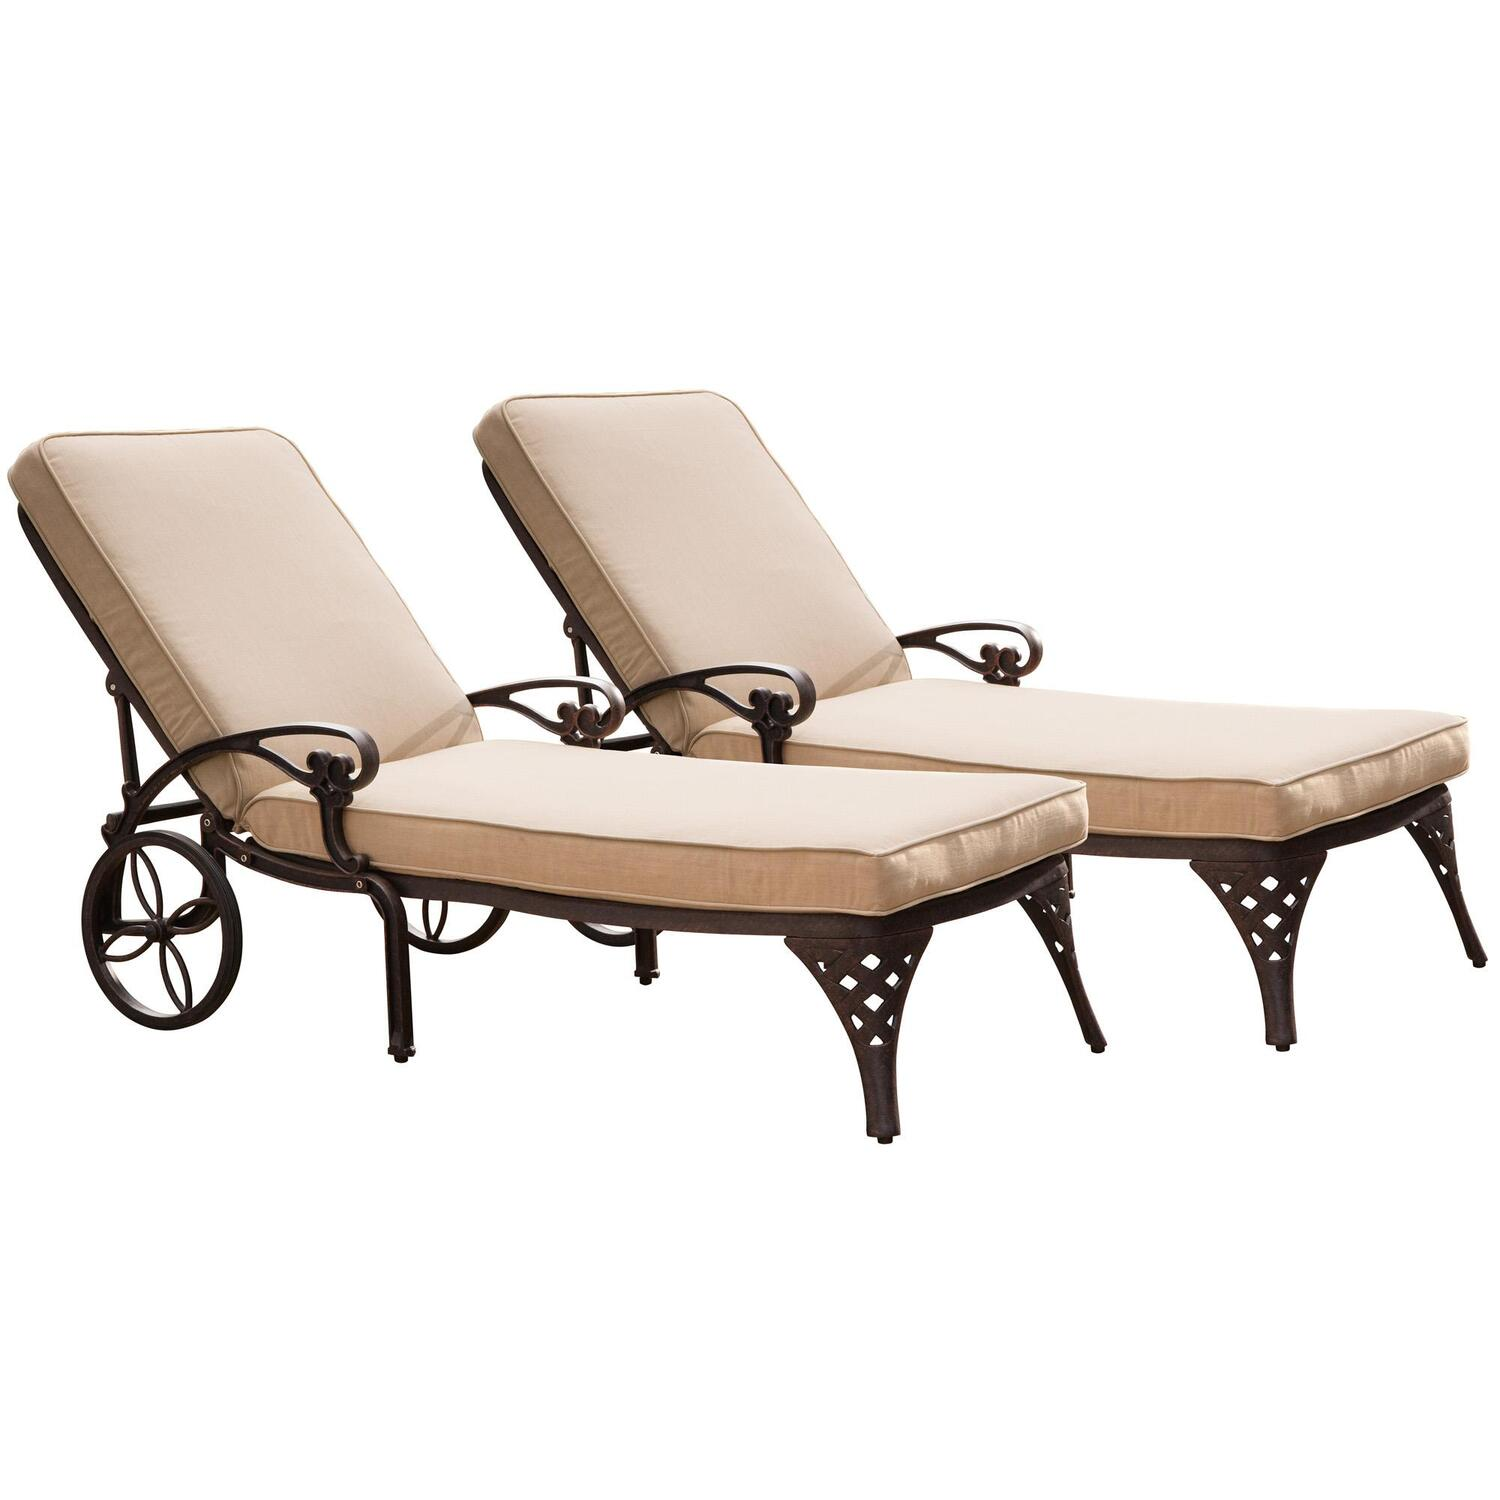 Home styles biscayne chaise lounge chairs 2 cushions by for Chaise lounge com